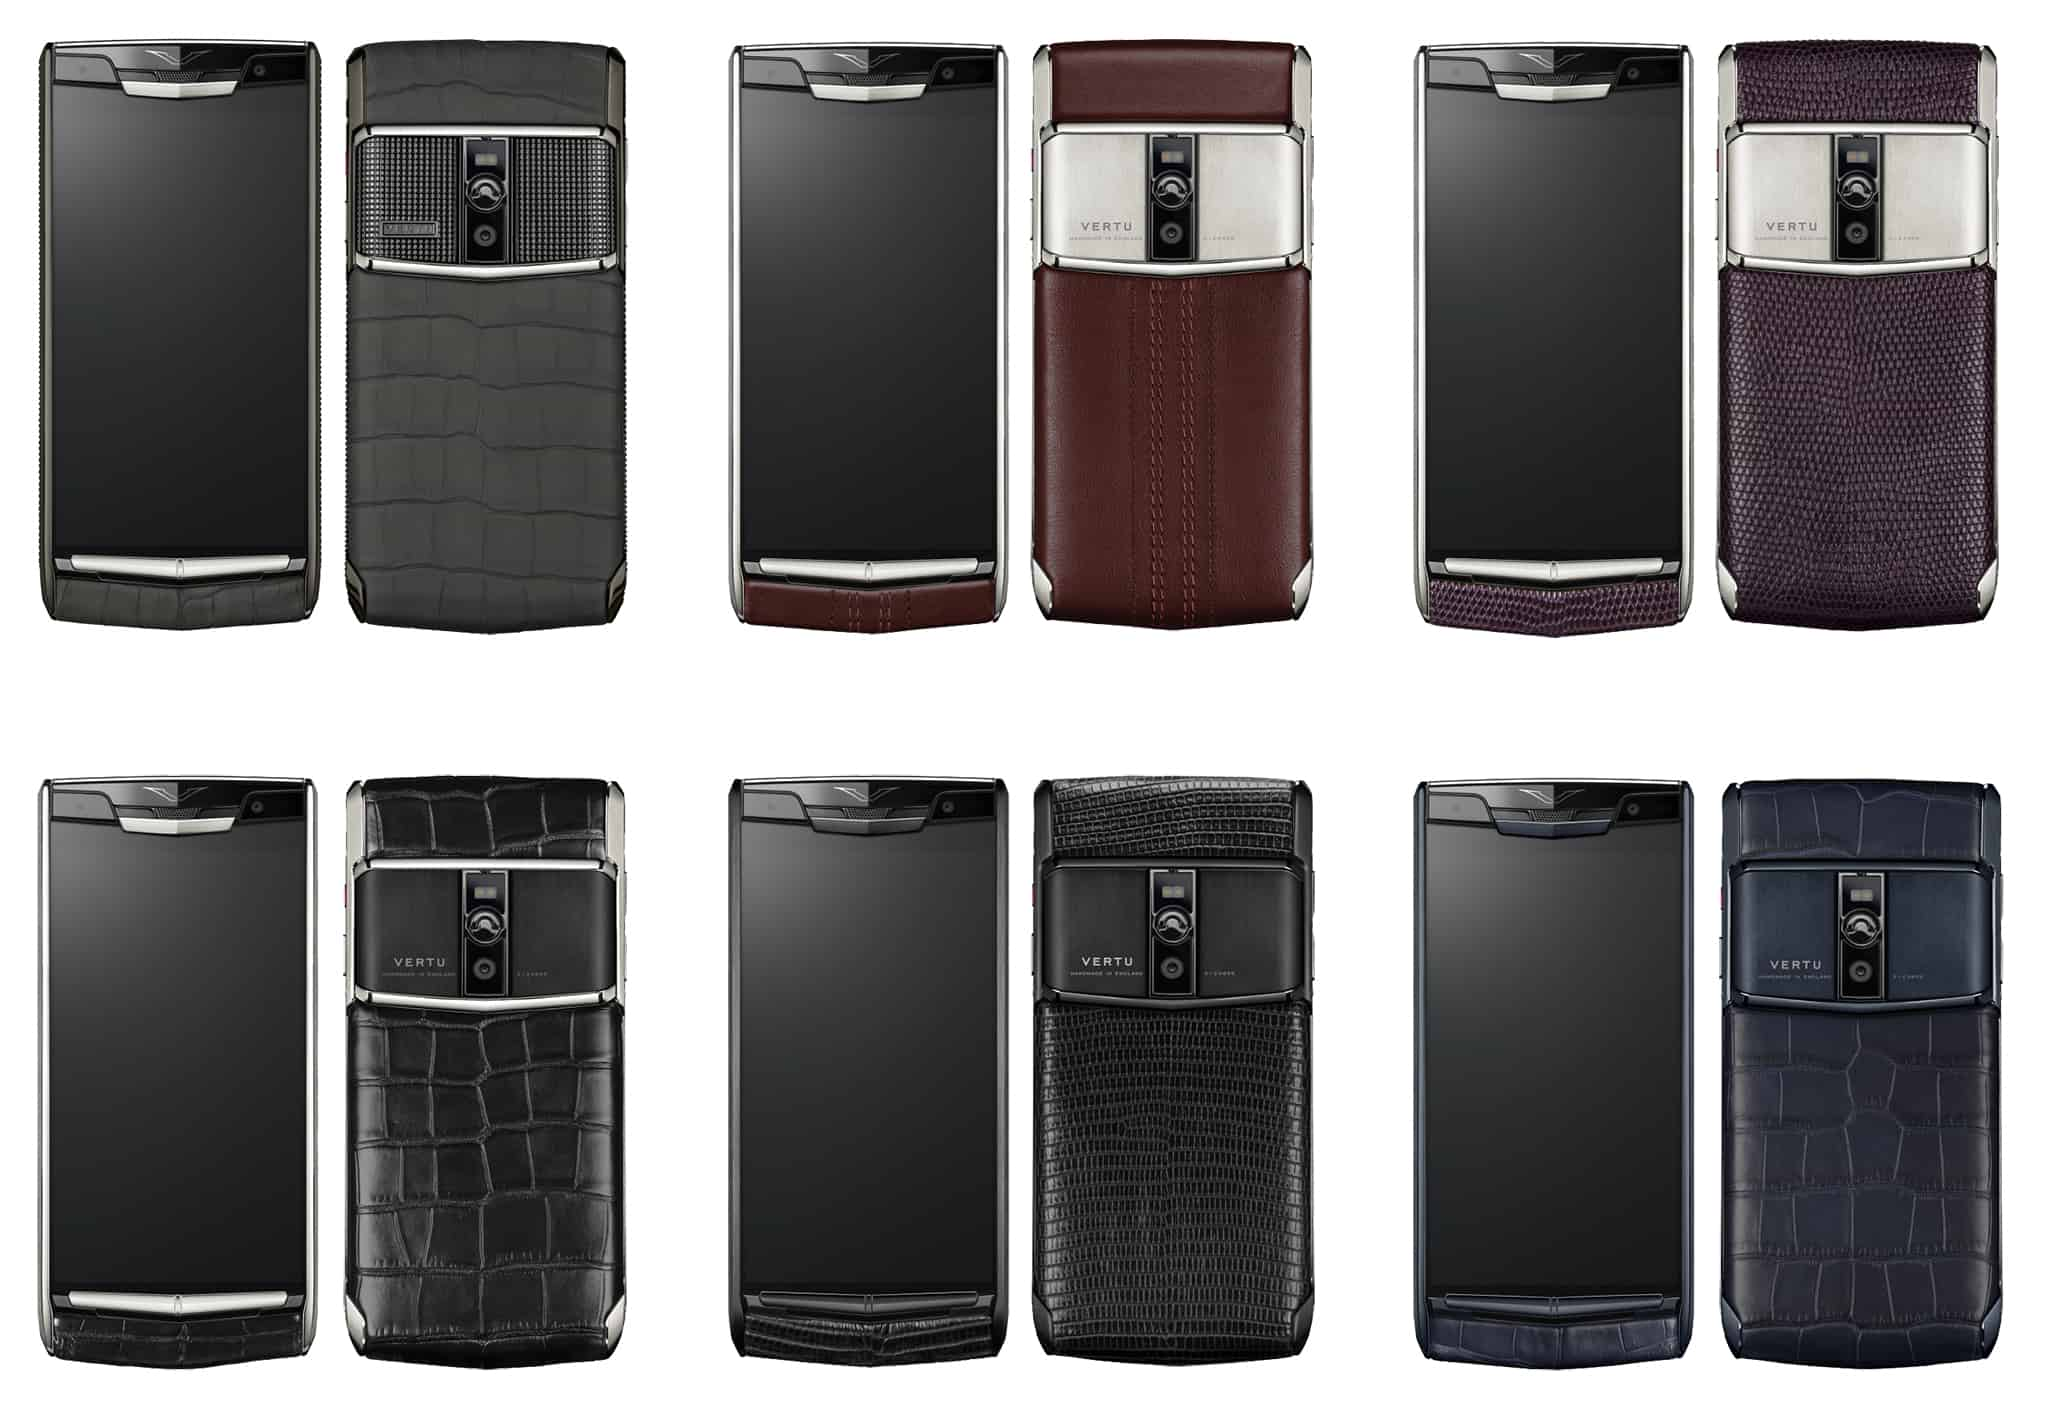 Vertu New Signature Touch design - perfect to the smallest details